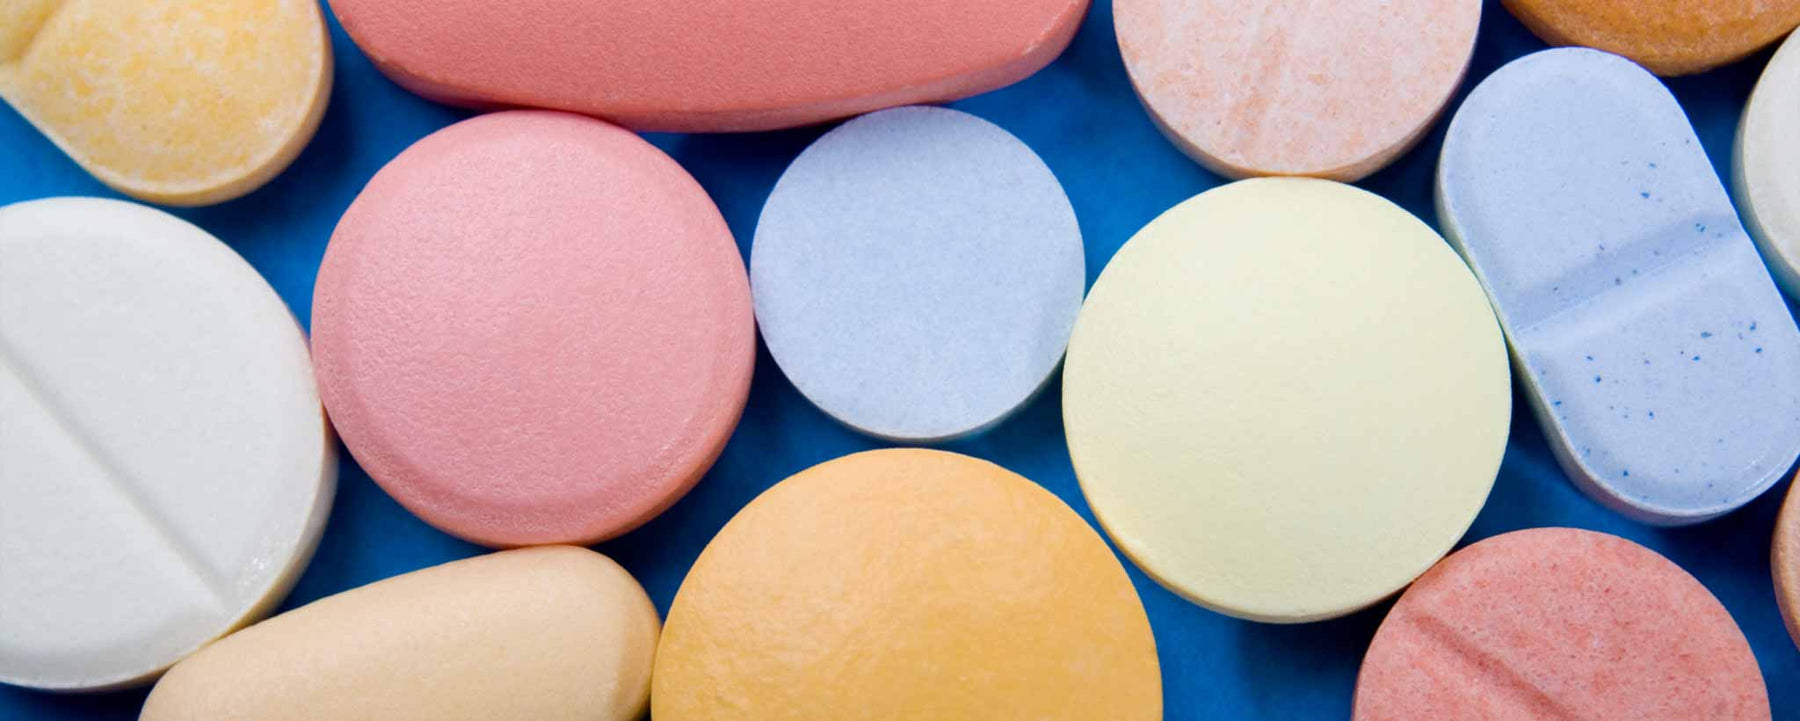 Are Multivitamins Essentially Placebos?